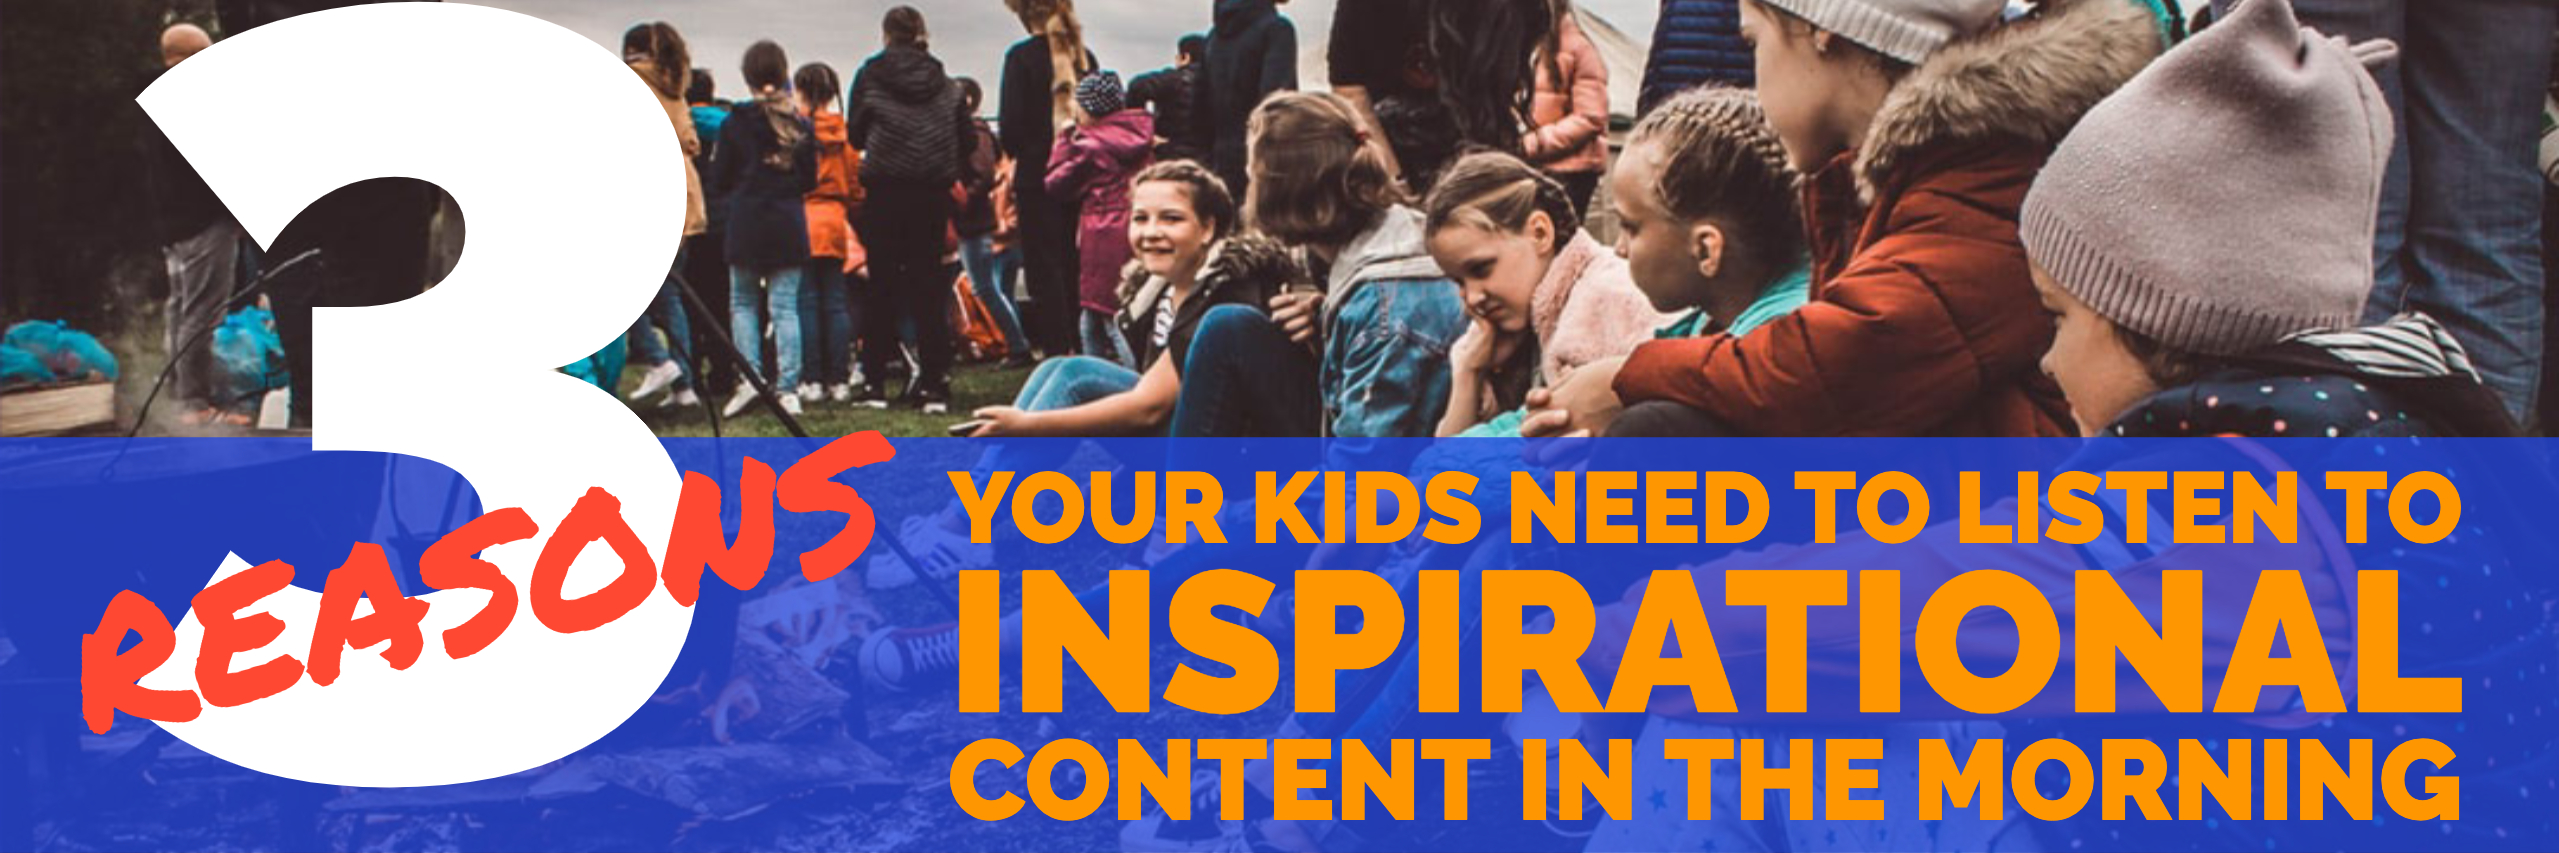 YOUR-KIDS-NEED-TO-LISTEN-TO-INSPIRATIONAL-CONTENT-IN-THE-MORNING-global-sales-coach-paul-argueta-motivational-speaker-tedx-speaker-author-contributor-sales-trainer